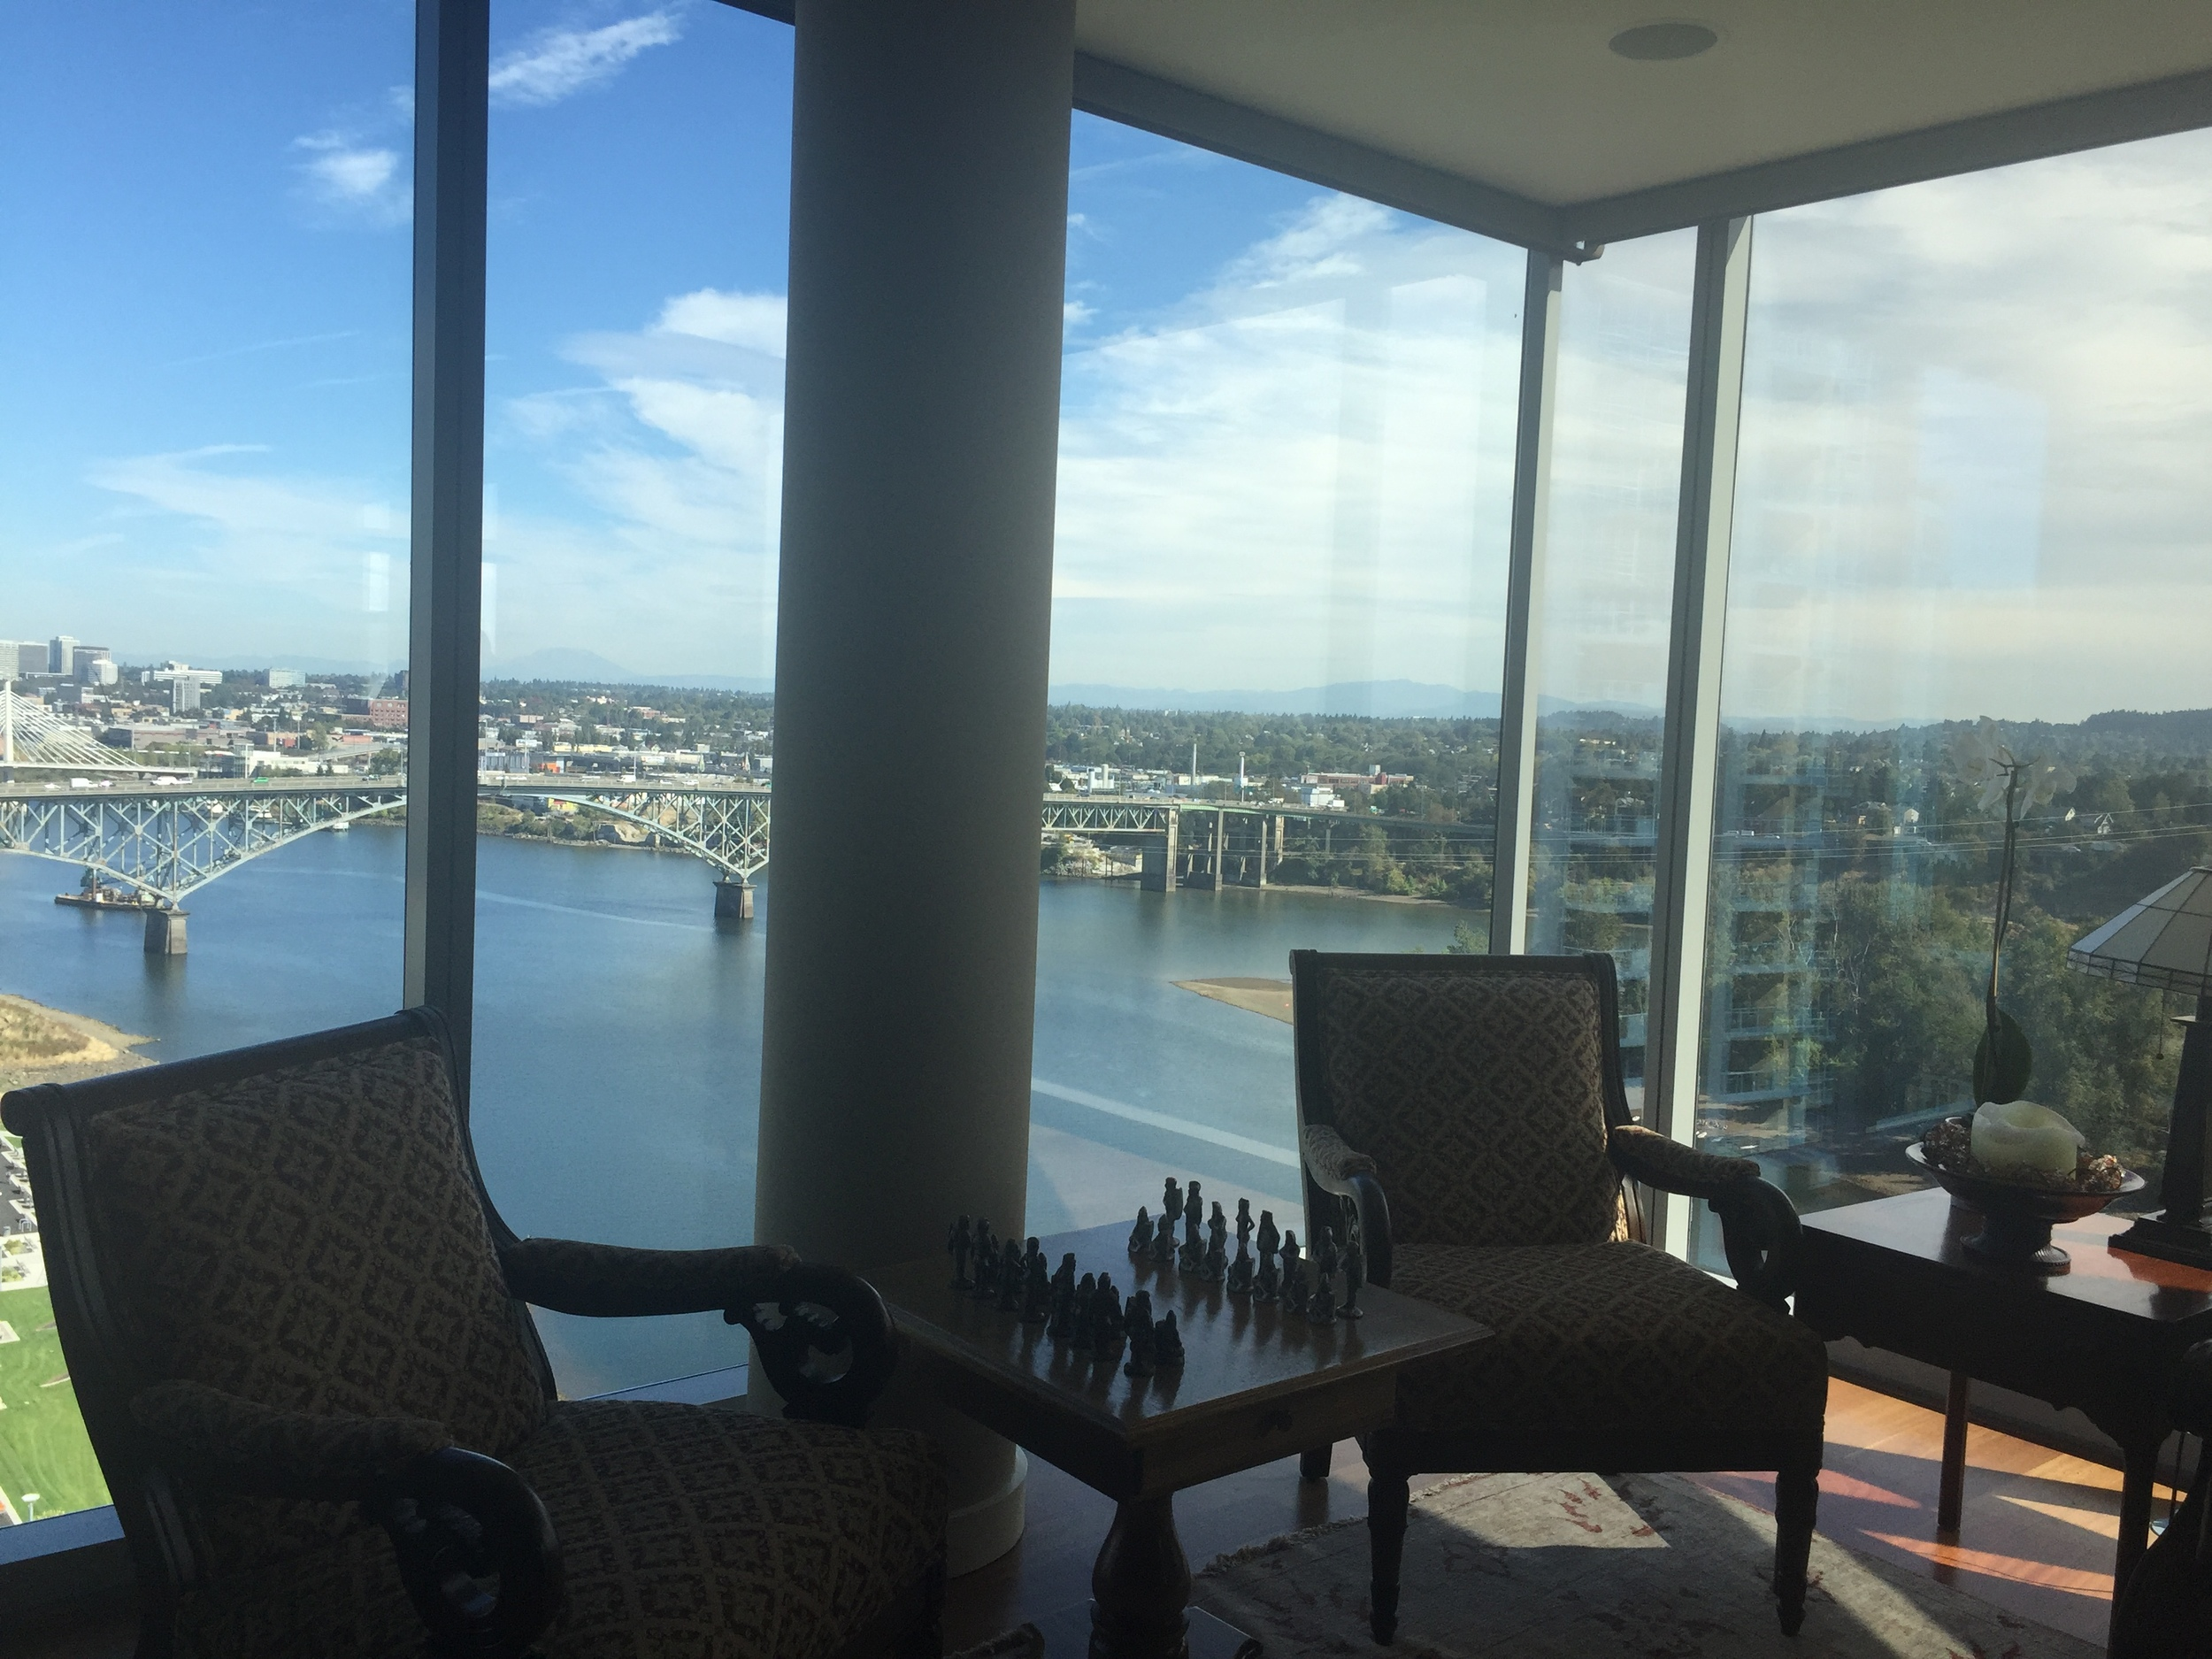 Another incredible view, this time on the South Waterfront. This 17th floor condo was right off the river and had entire walls of windows overlooking the city.